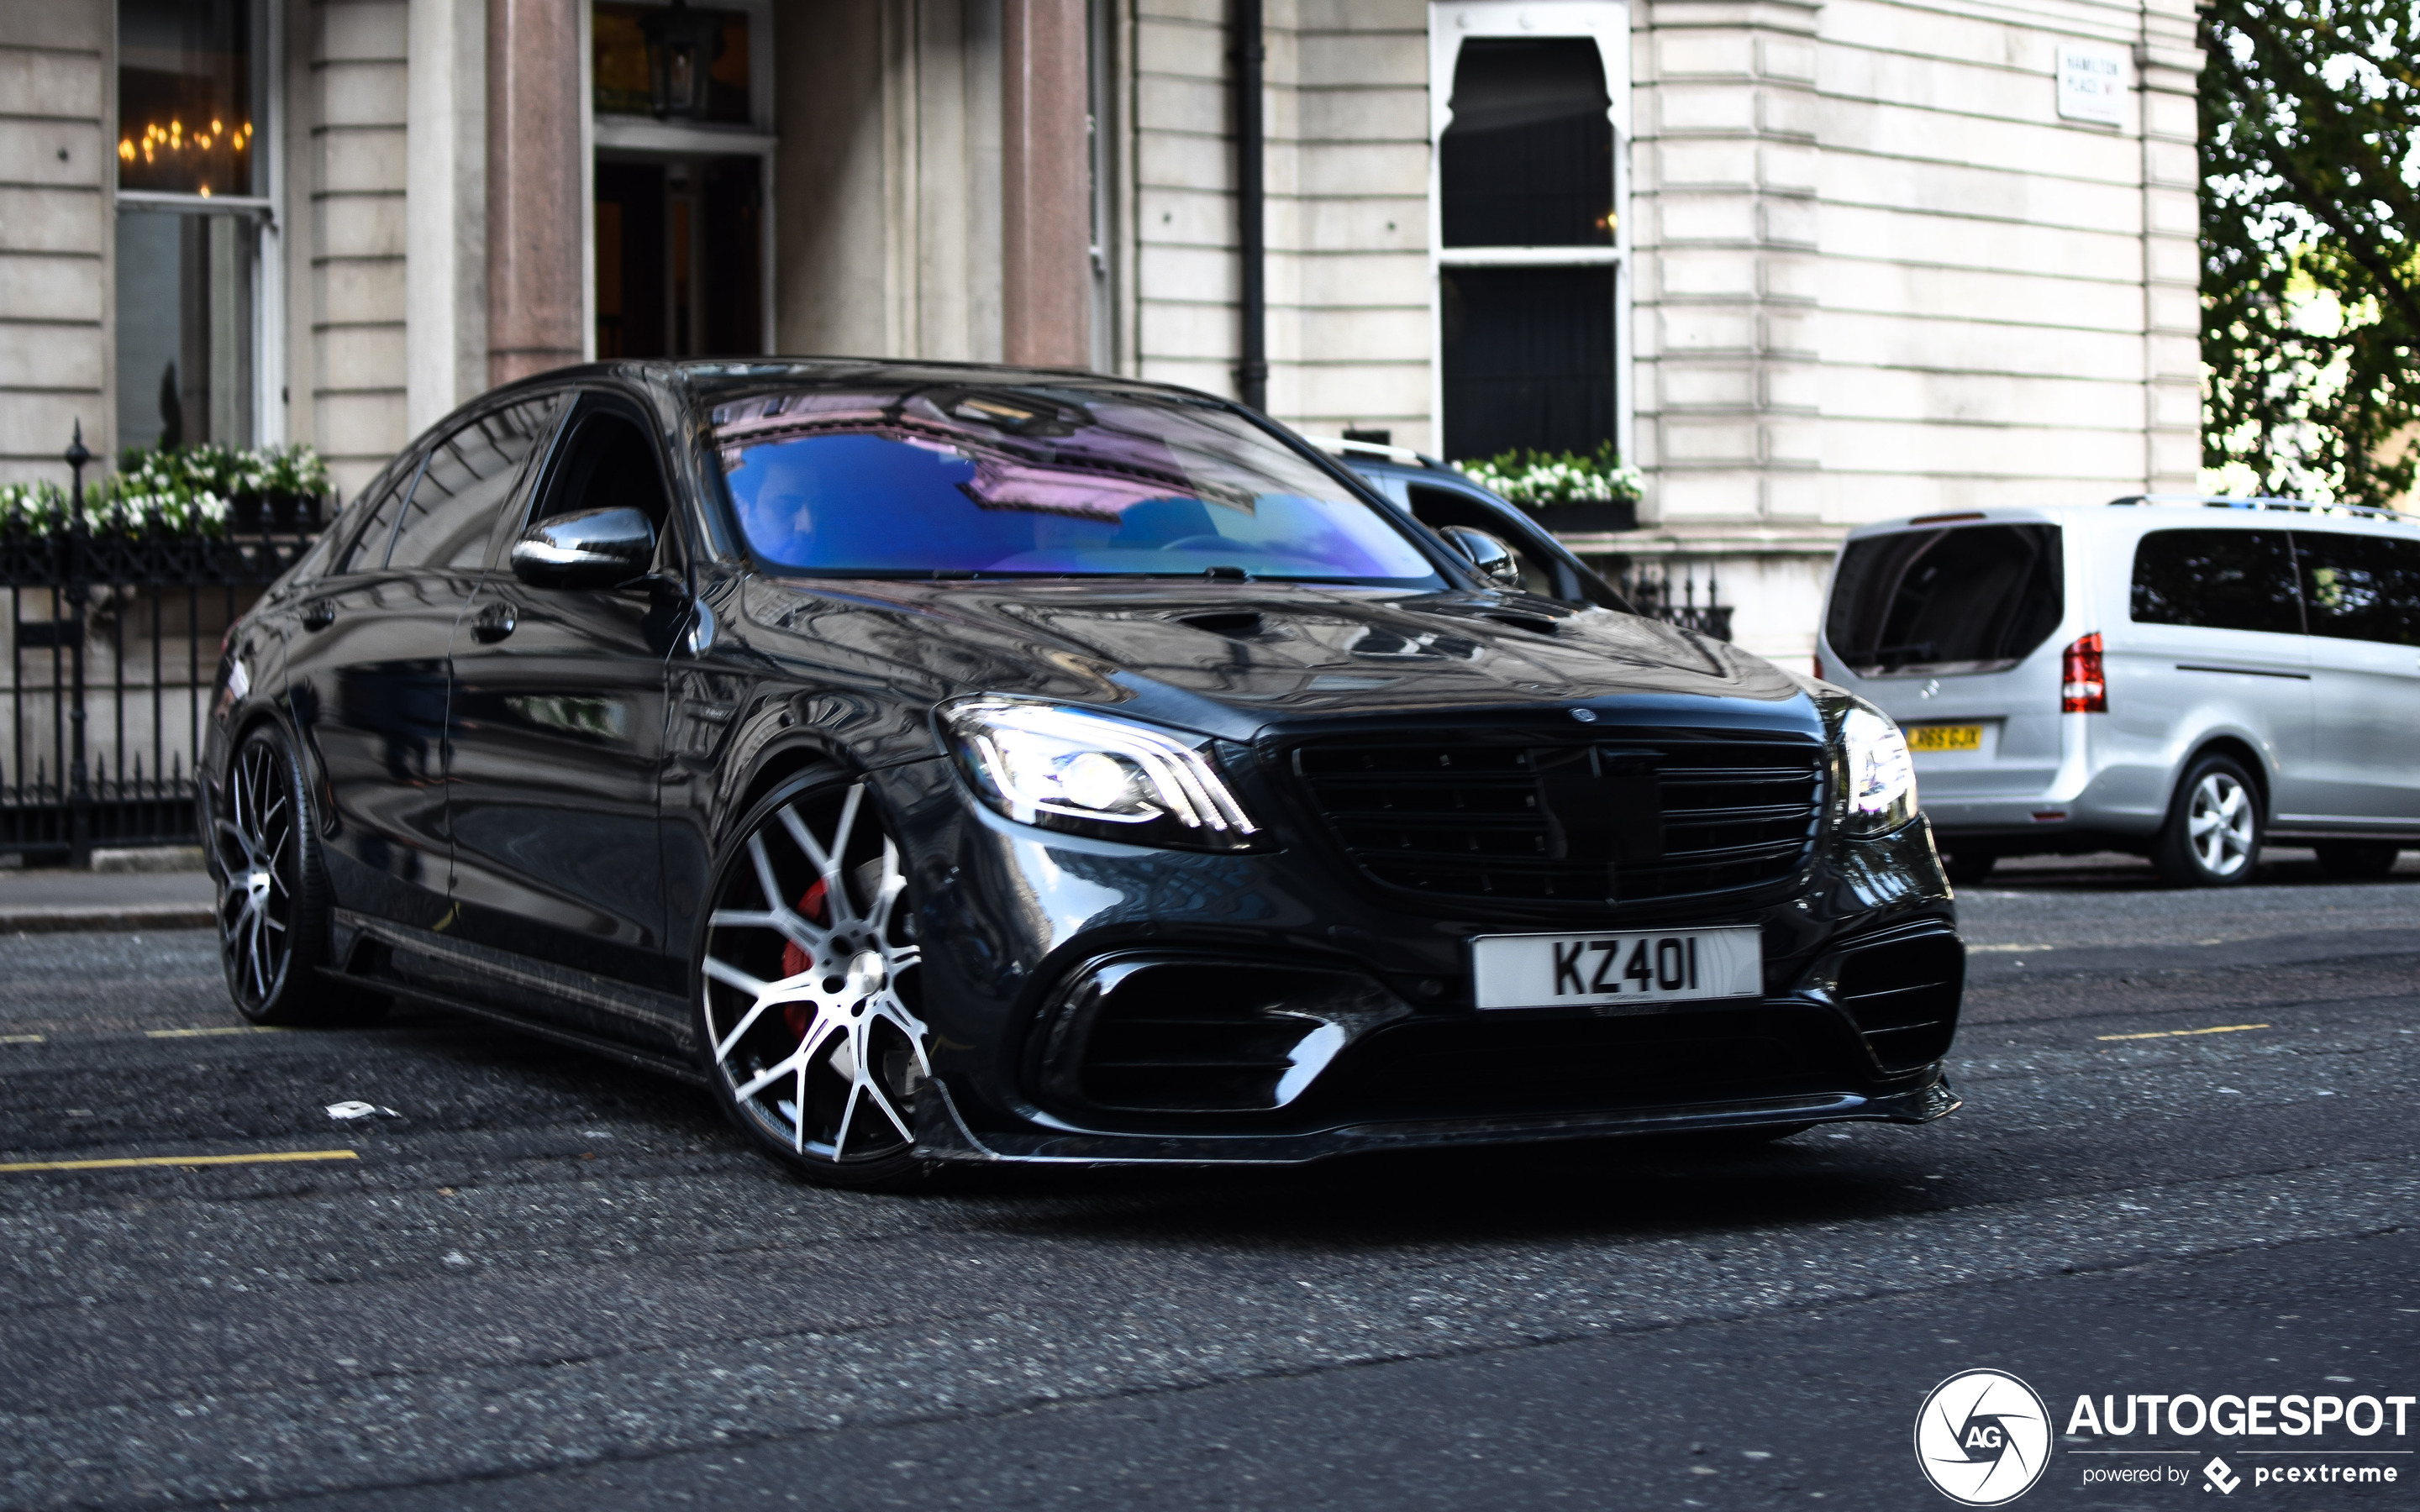 Mercedes-AMG S 63 V222 Mansory Signature Edition